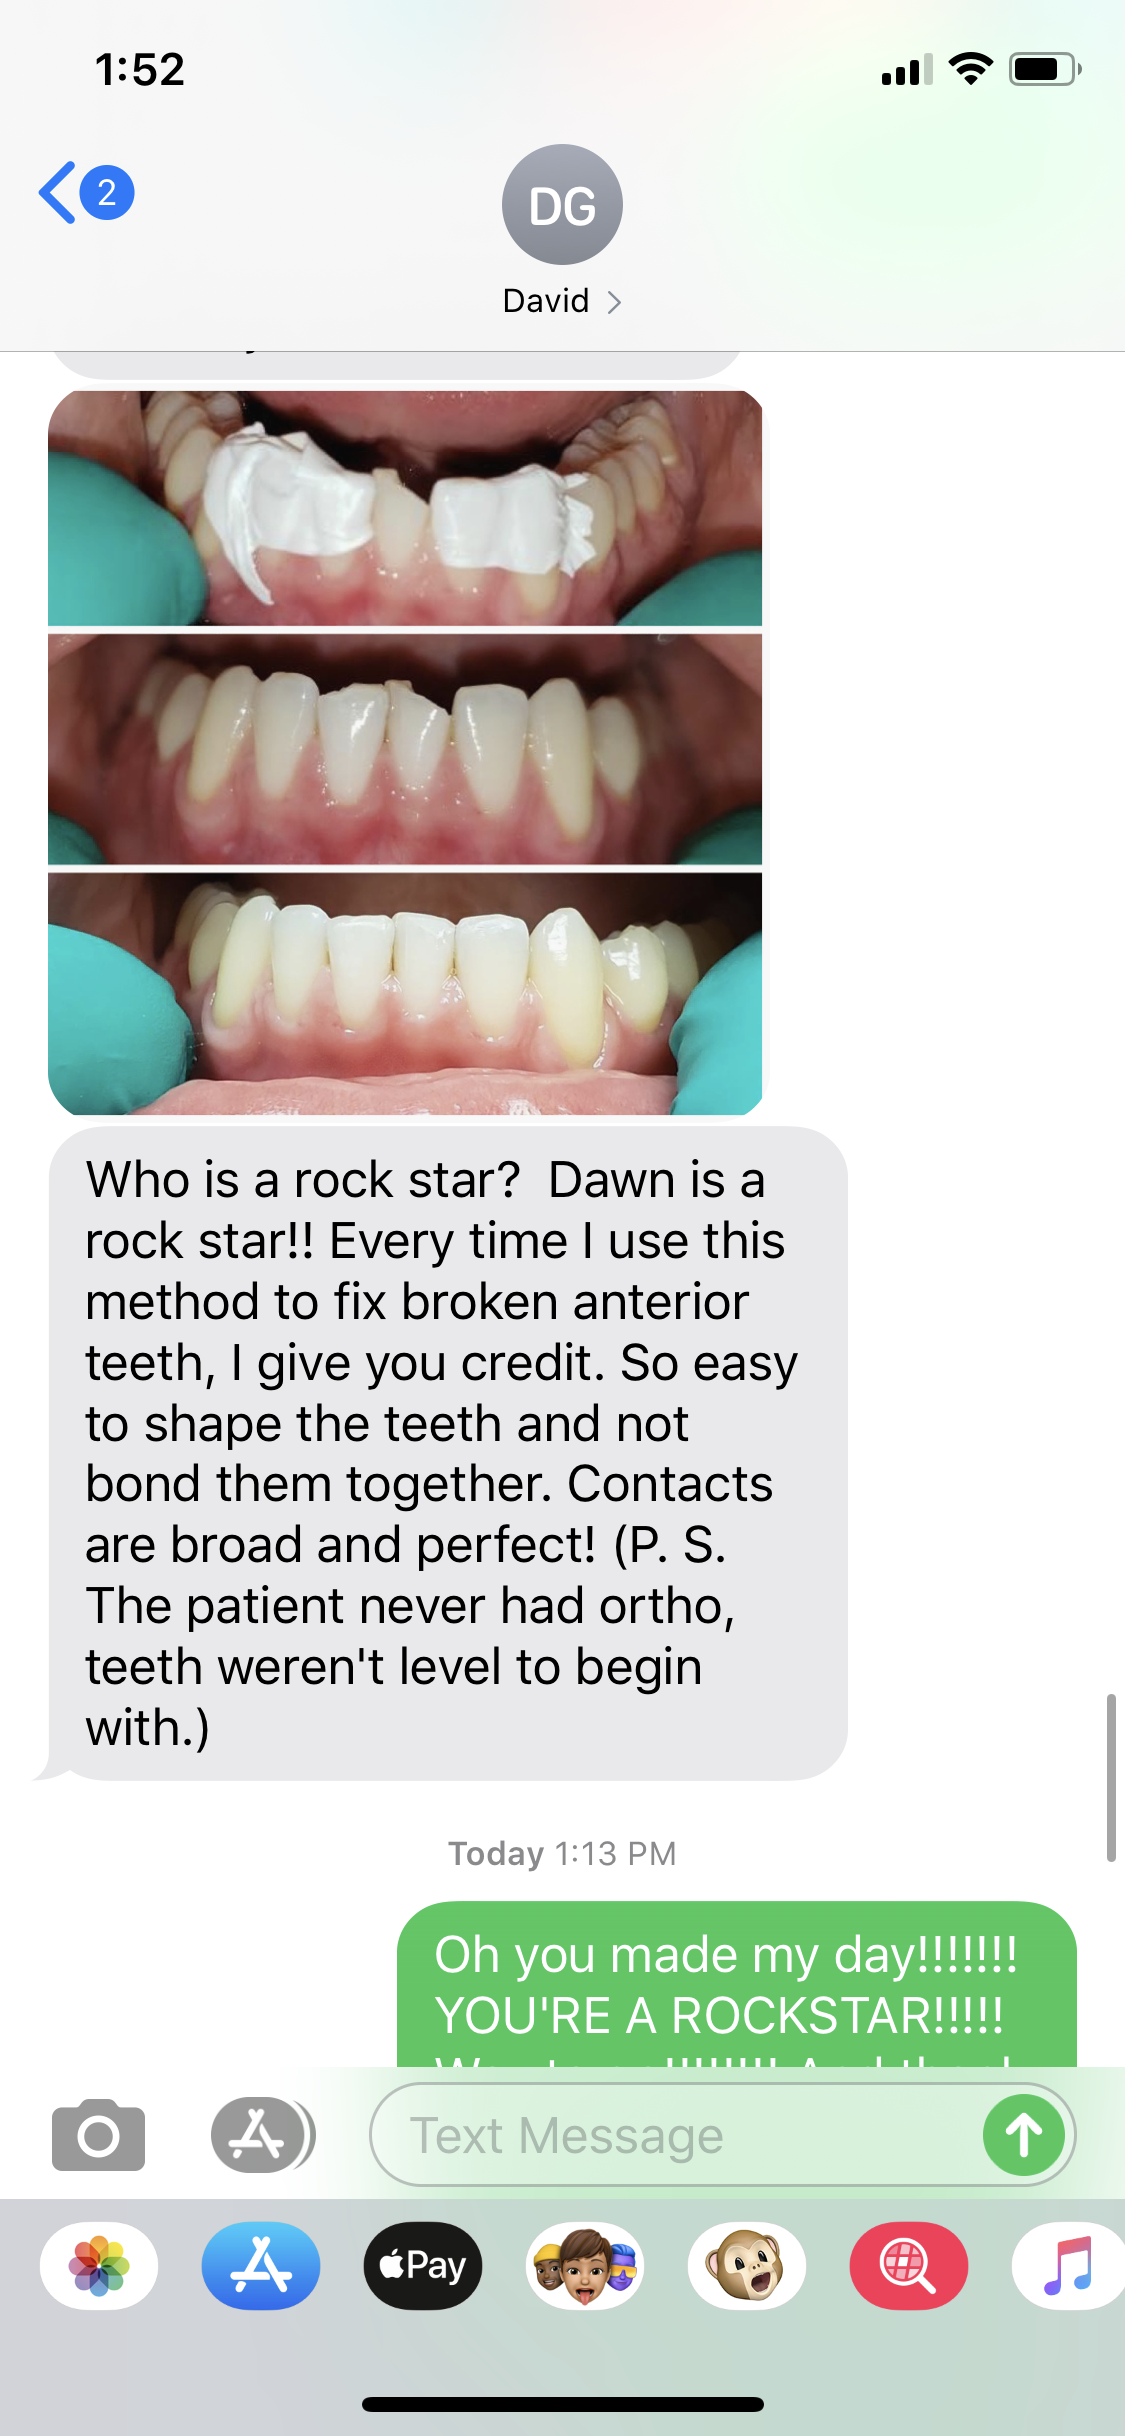 An Awesome Thank You Text from a Dentist Friend